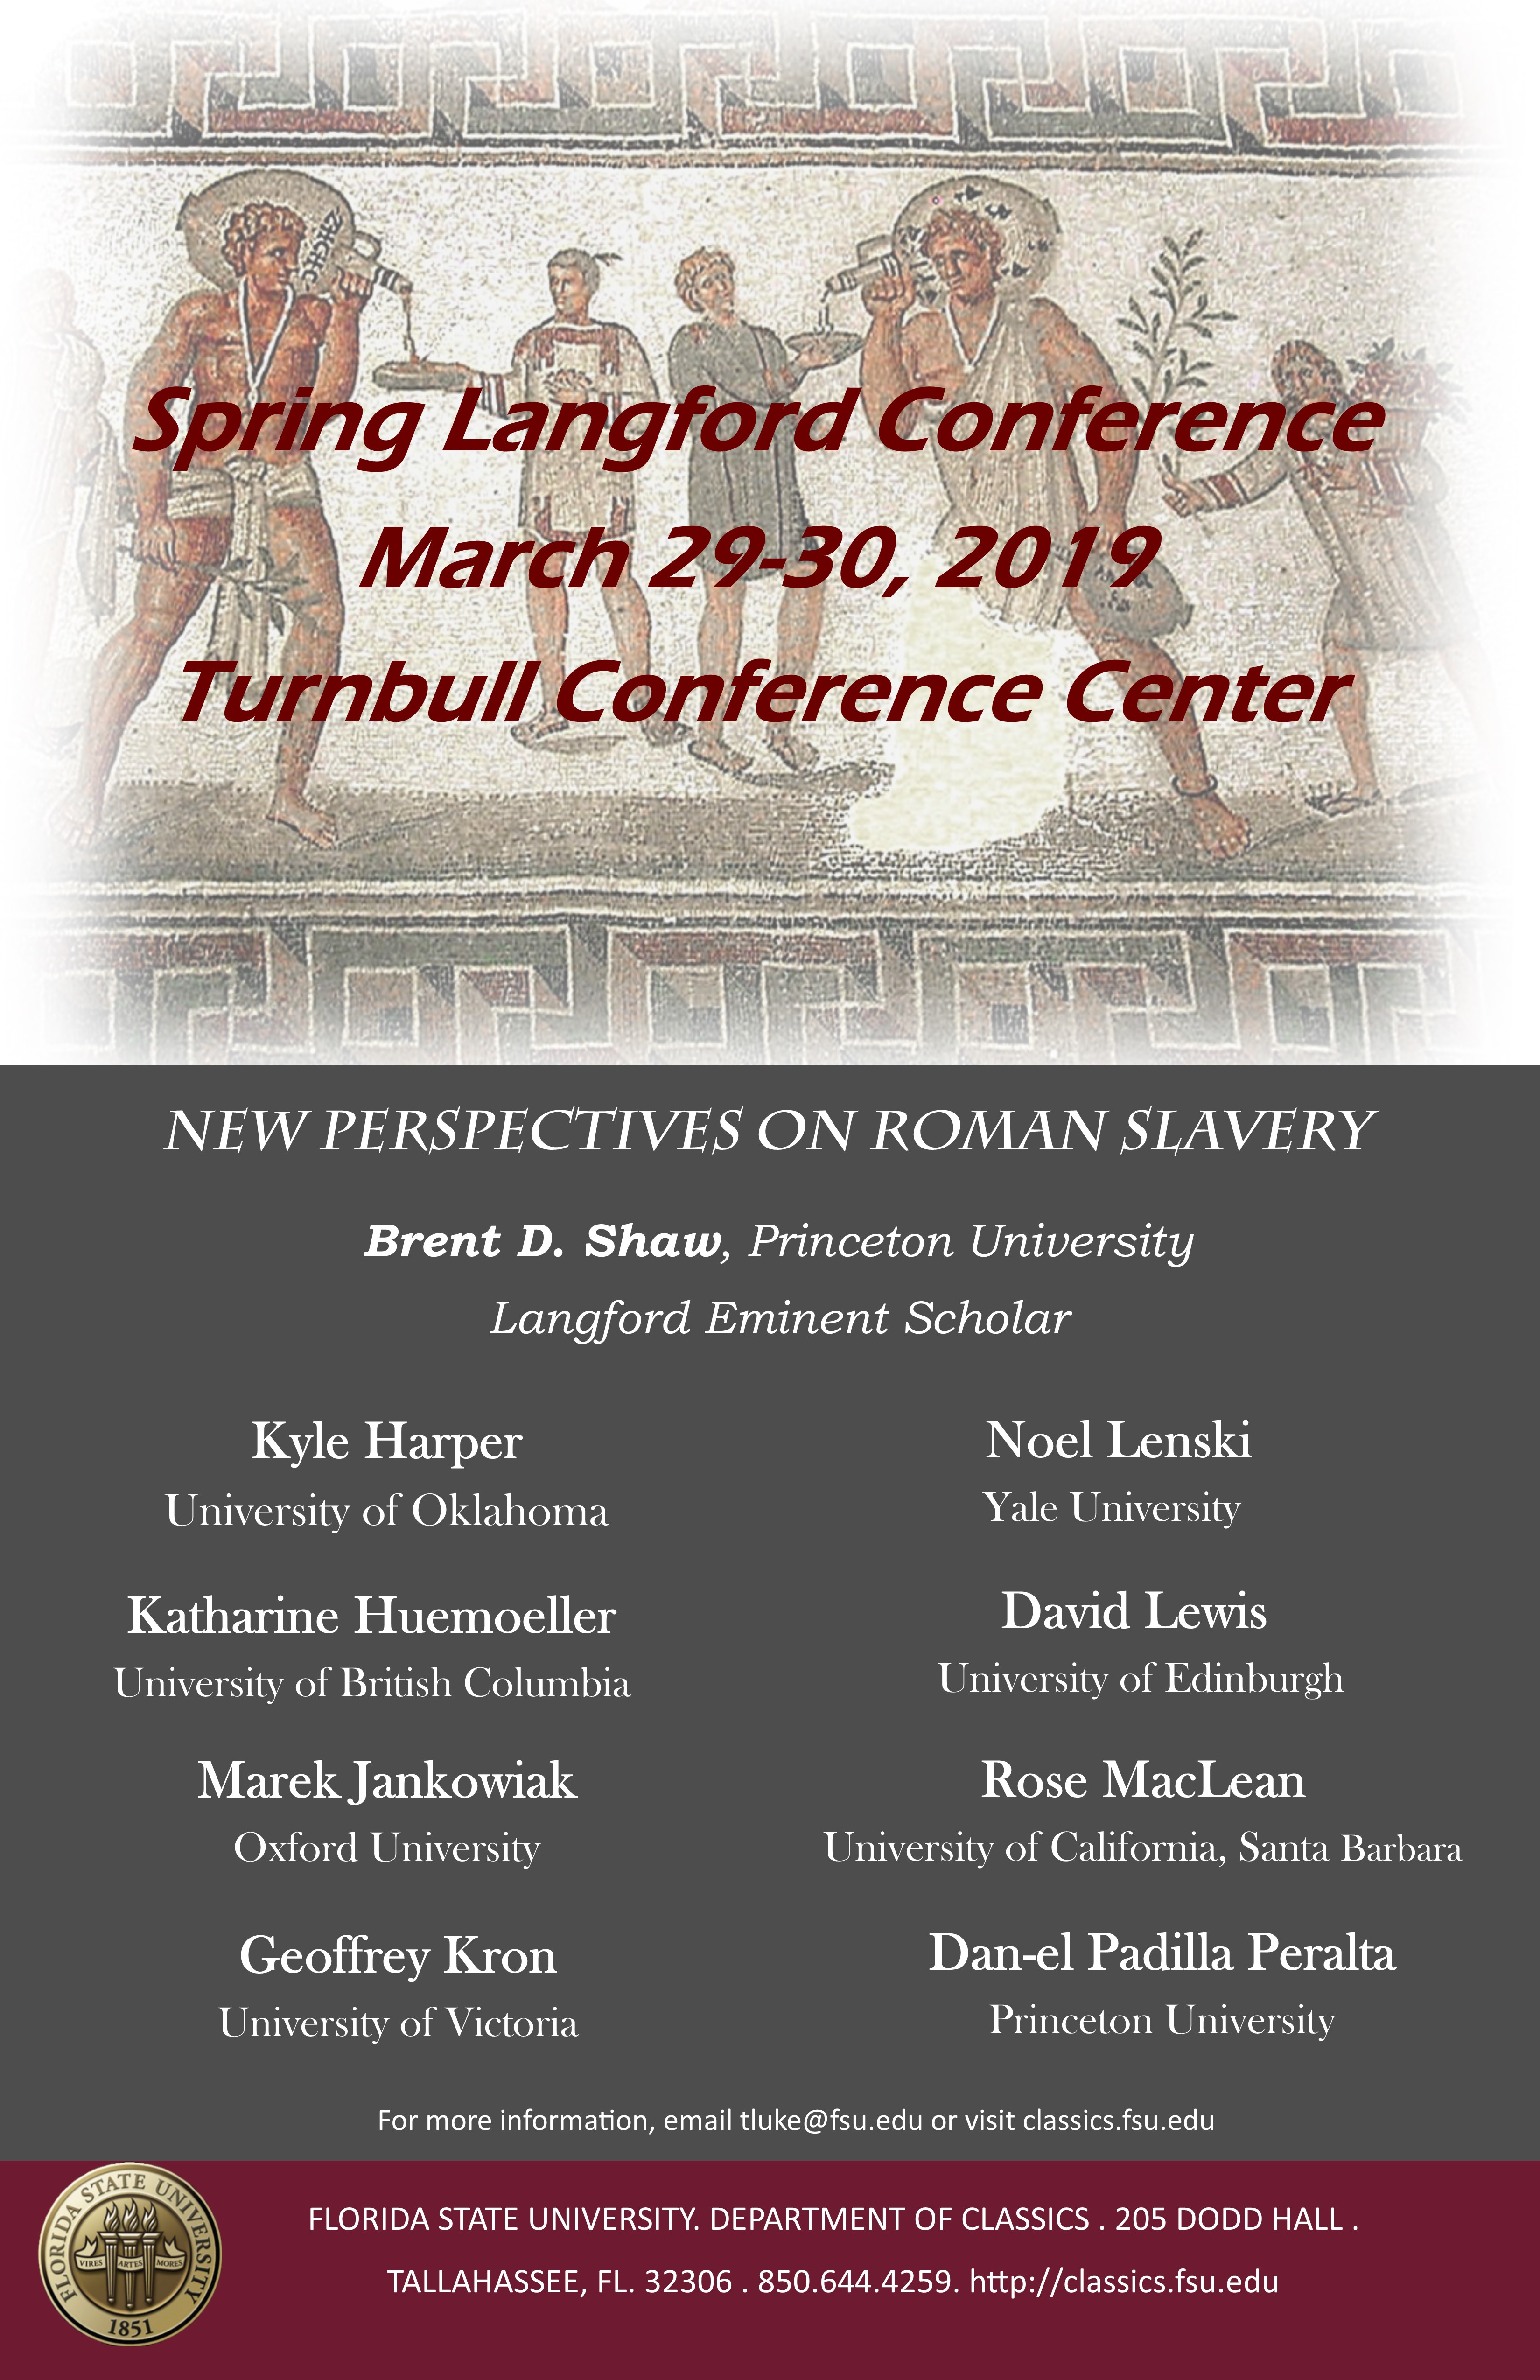 Spring Langford Conference March 29-30, 2019 | Department of Classics